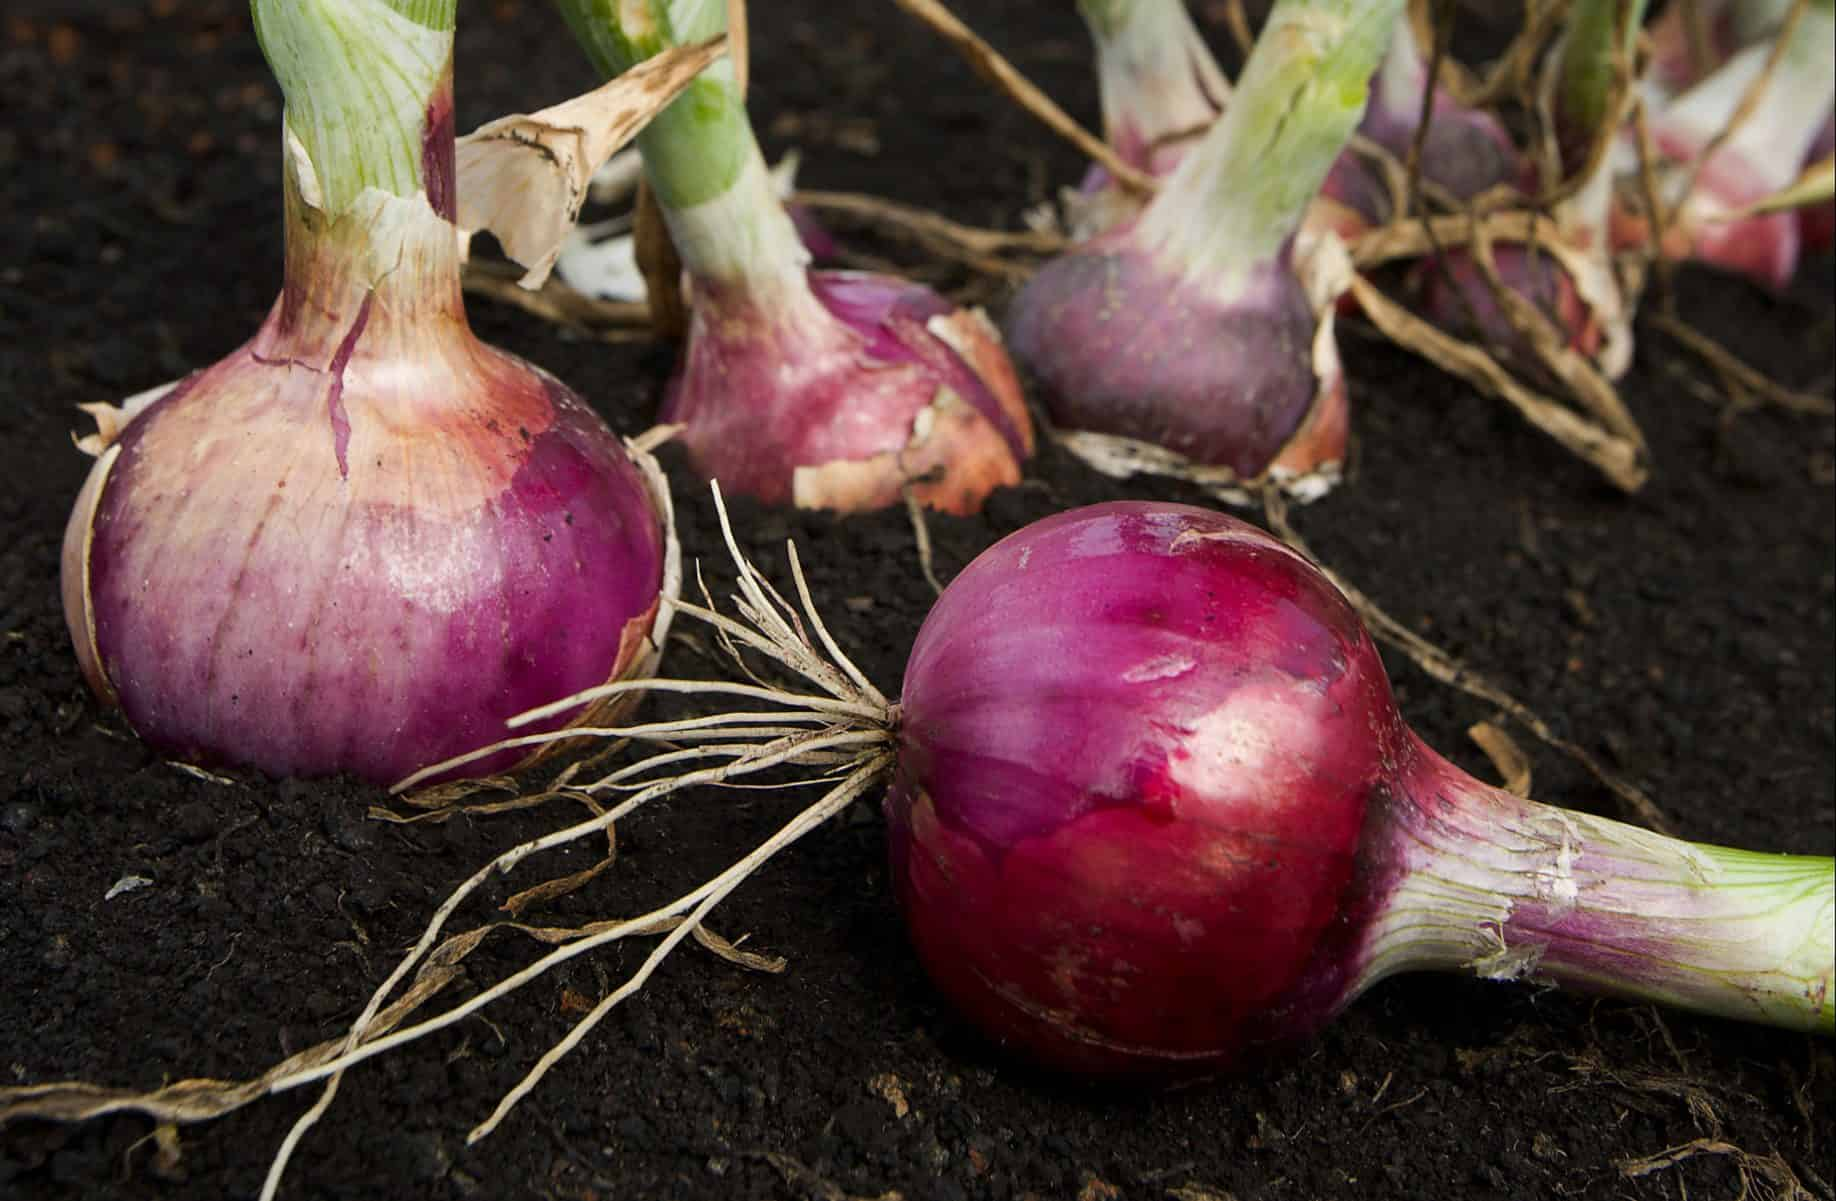 Onion Herb Uses and Benefits as Medicine